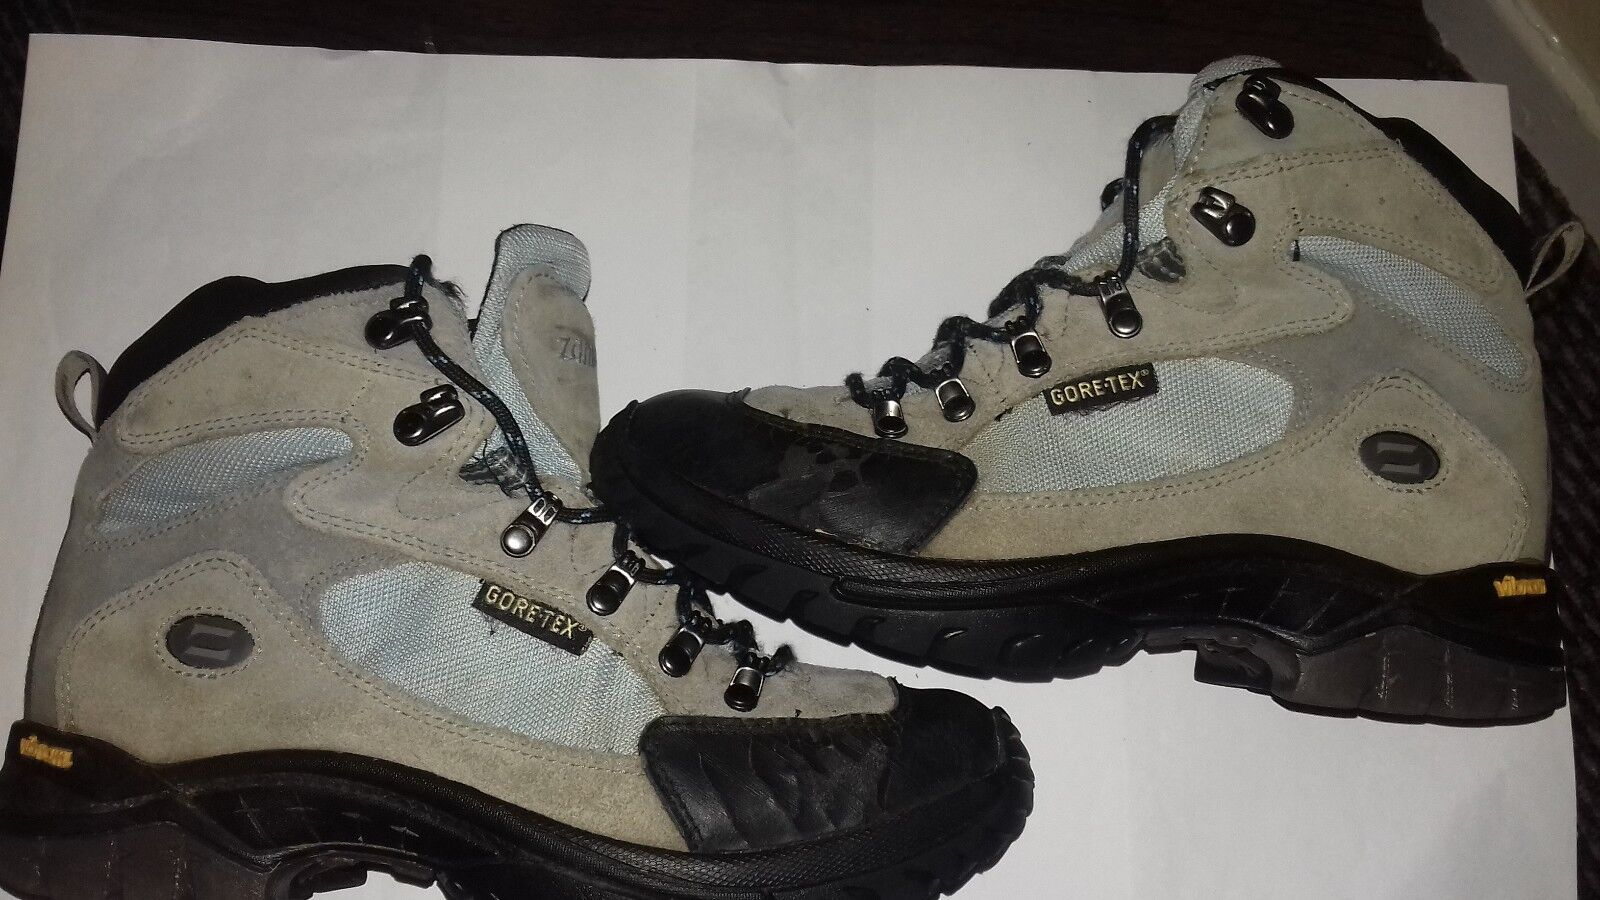 Zamberlan goretex hiking books with vibram soles unisex size good condition